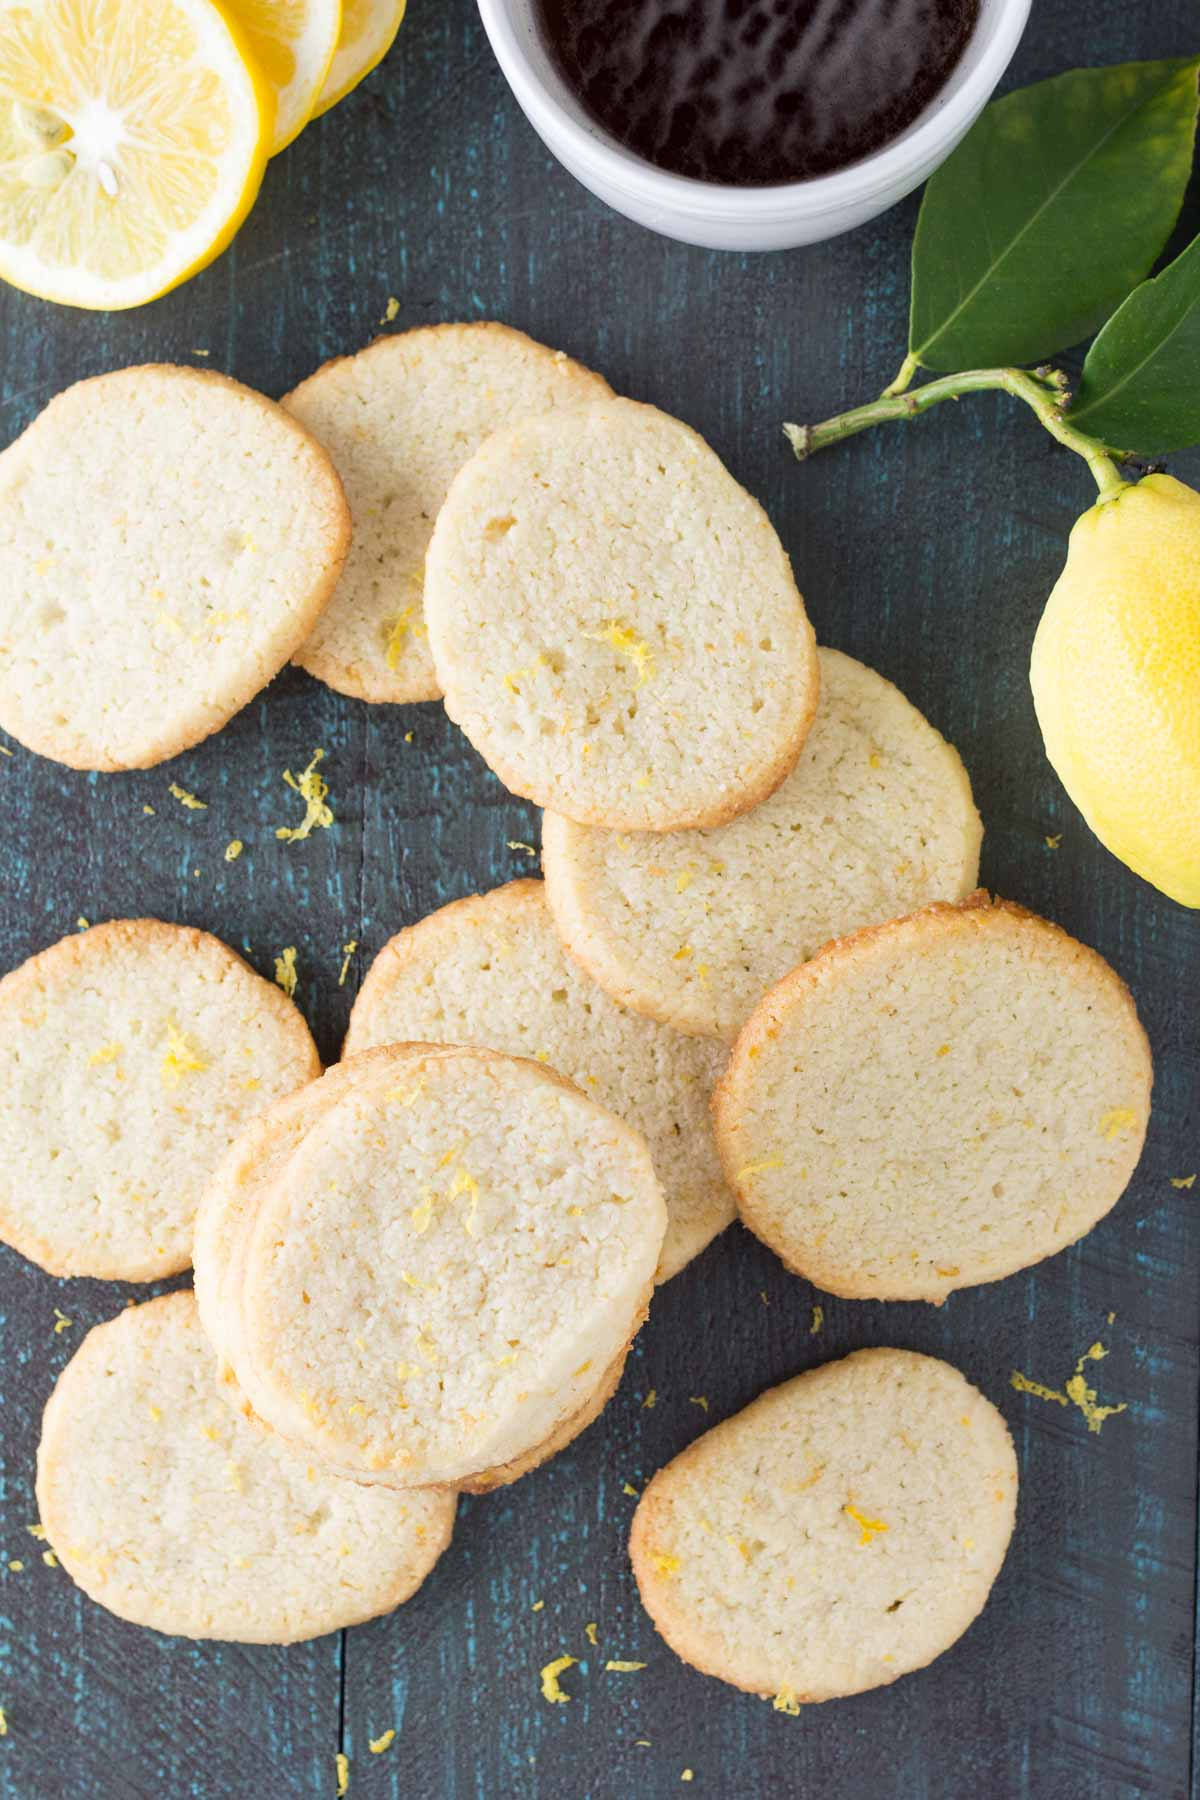 These easy Lemon Almond Shortbread Cookies are slice and bake and a perfect Spring dessert! They are gluten free and low carb with only 3 grams of carbohydrates per serving!